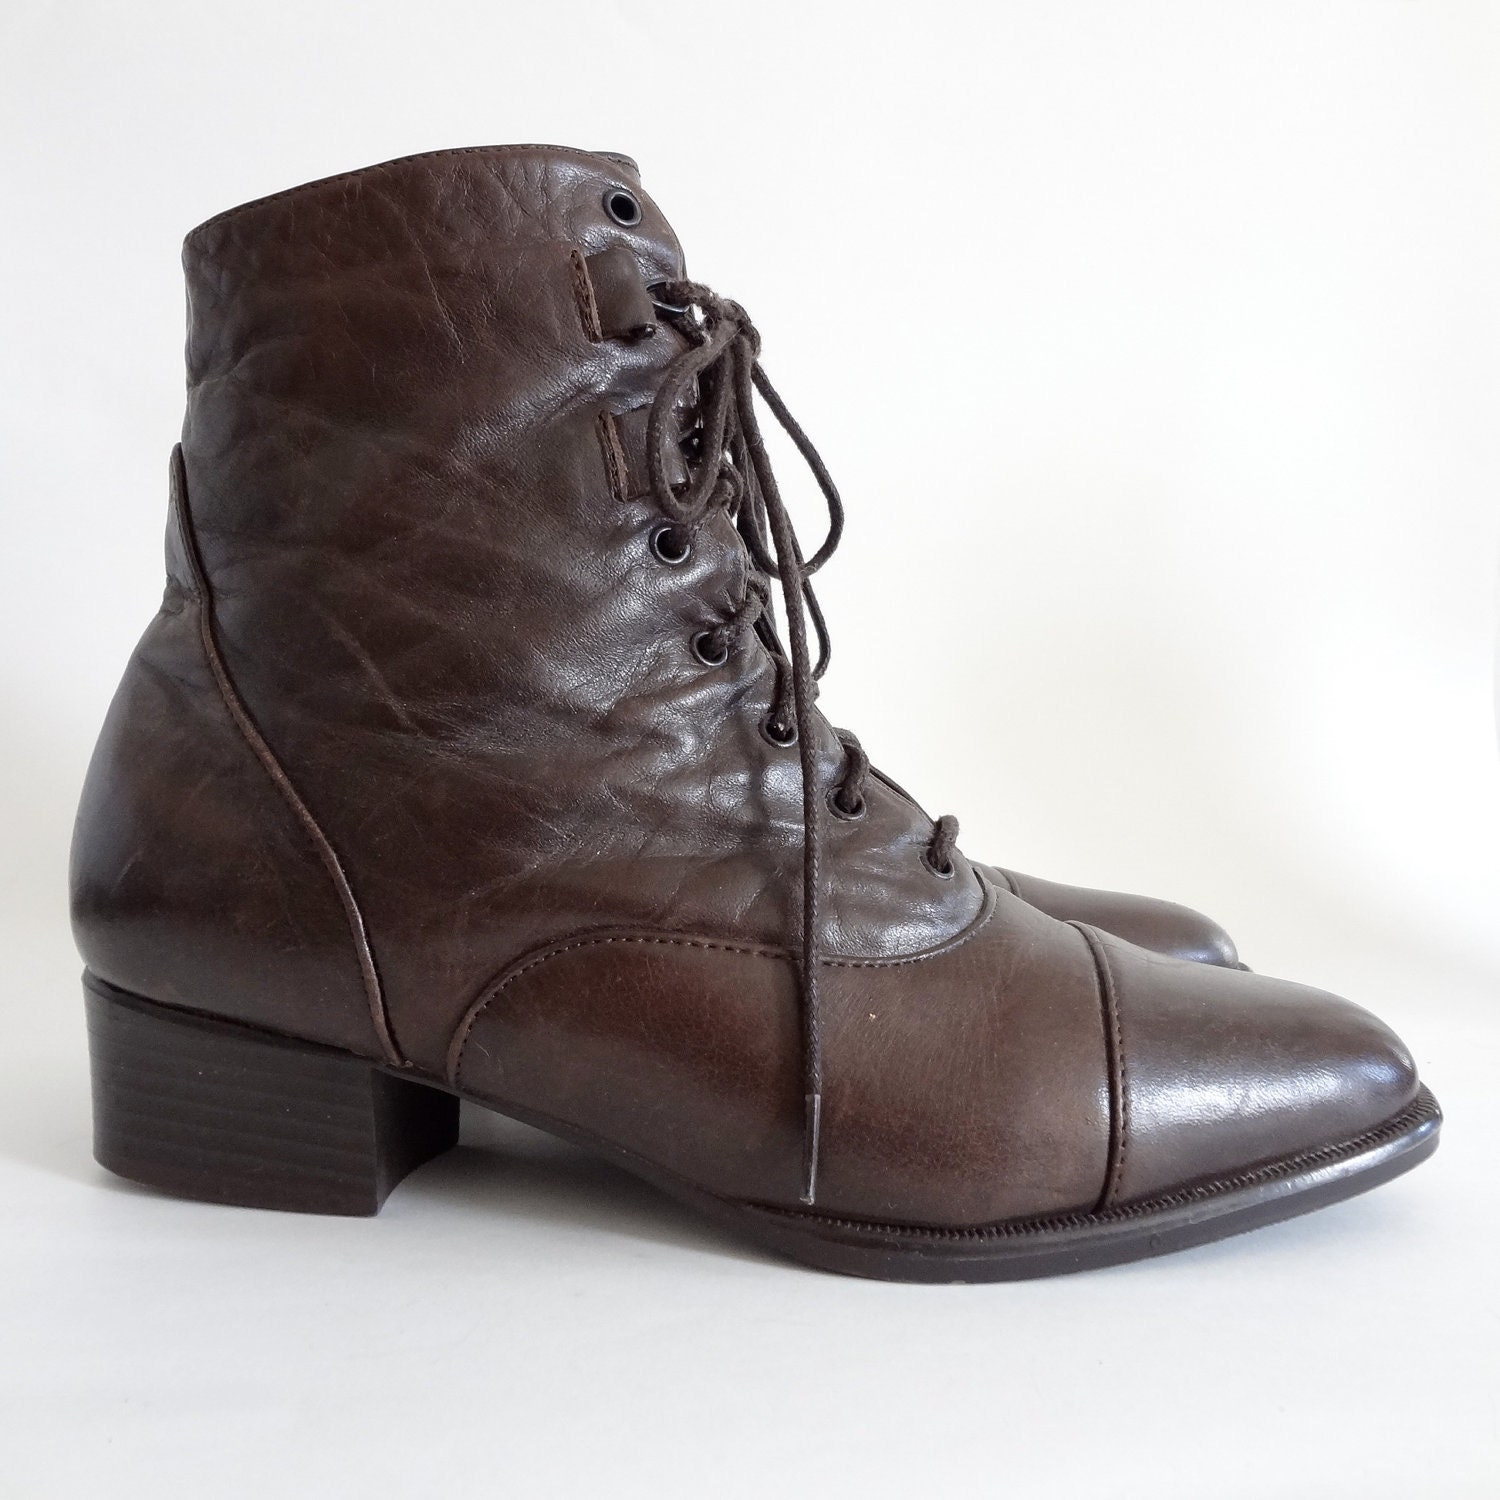 Lastest Vintage Lace Up Granny Boots  EBay